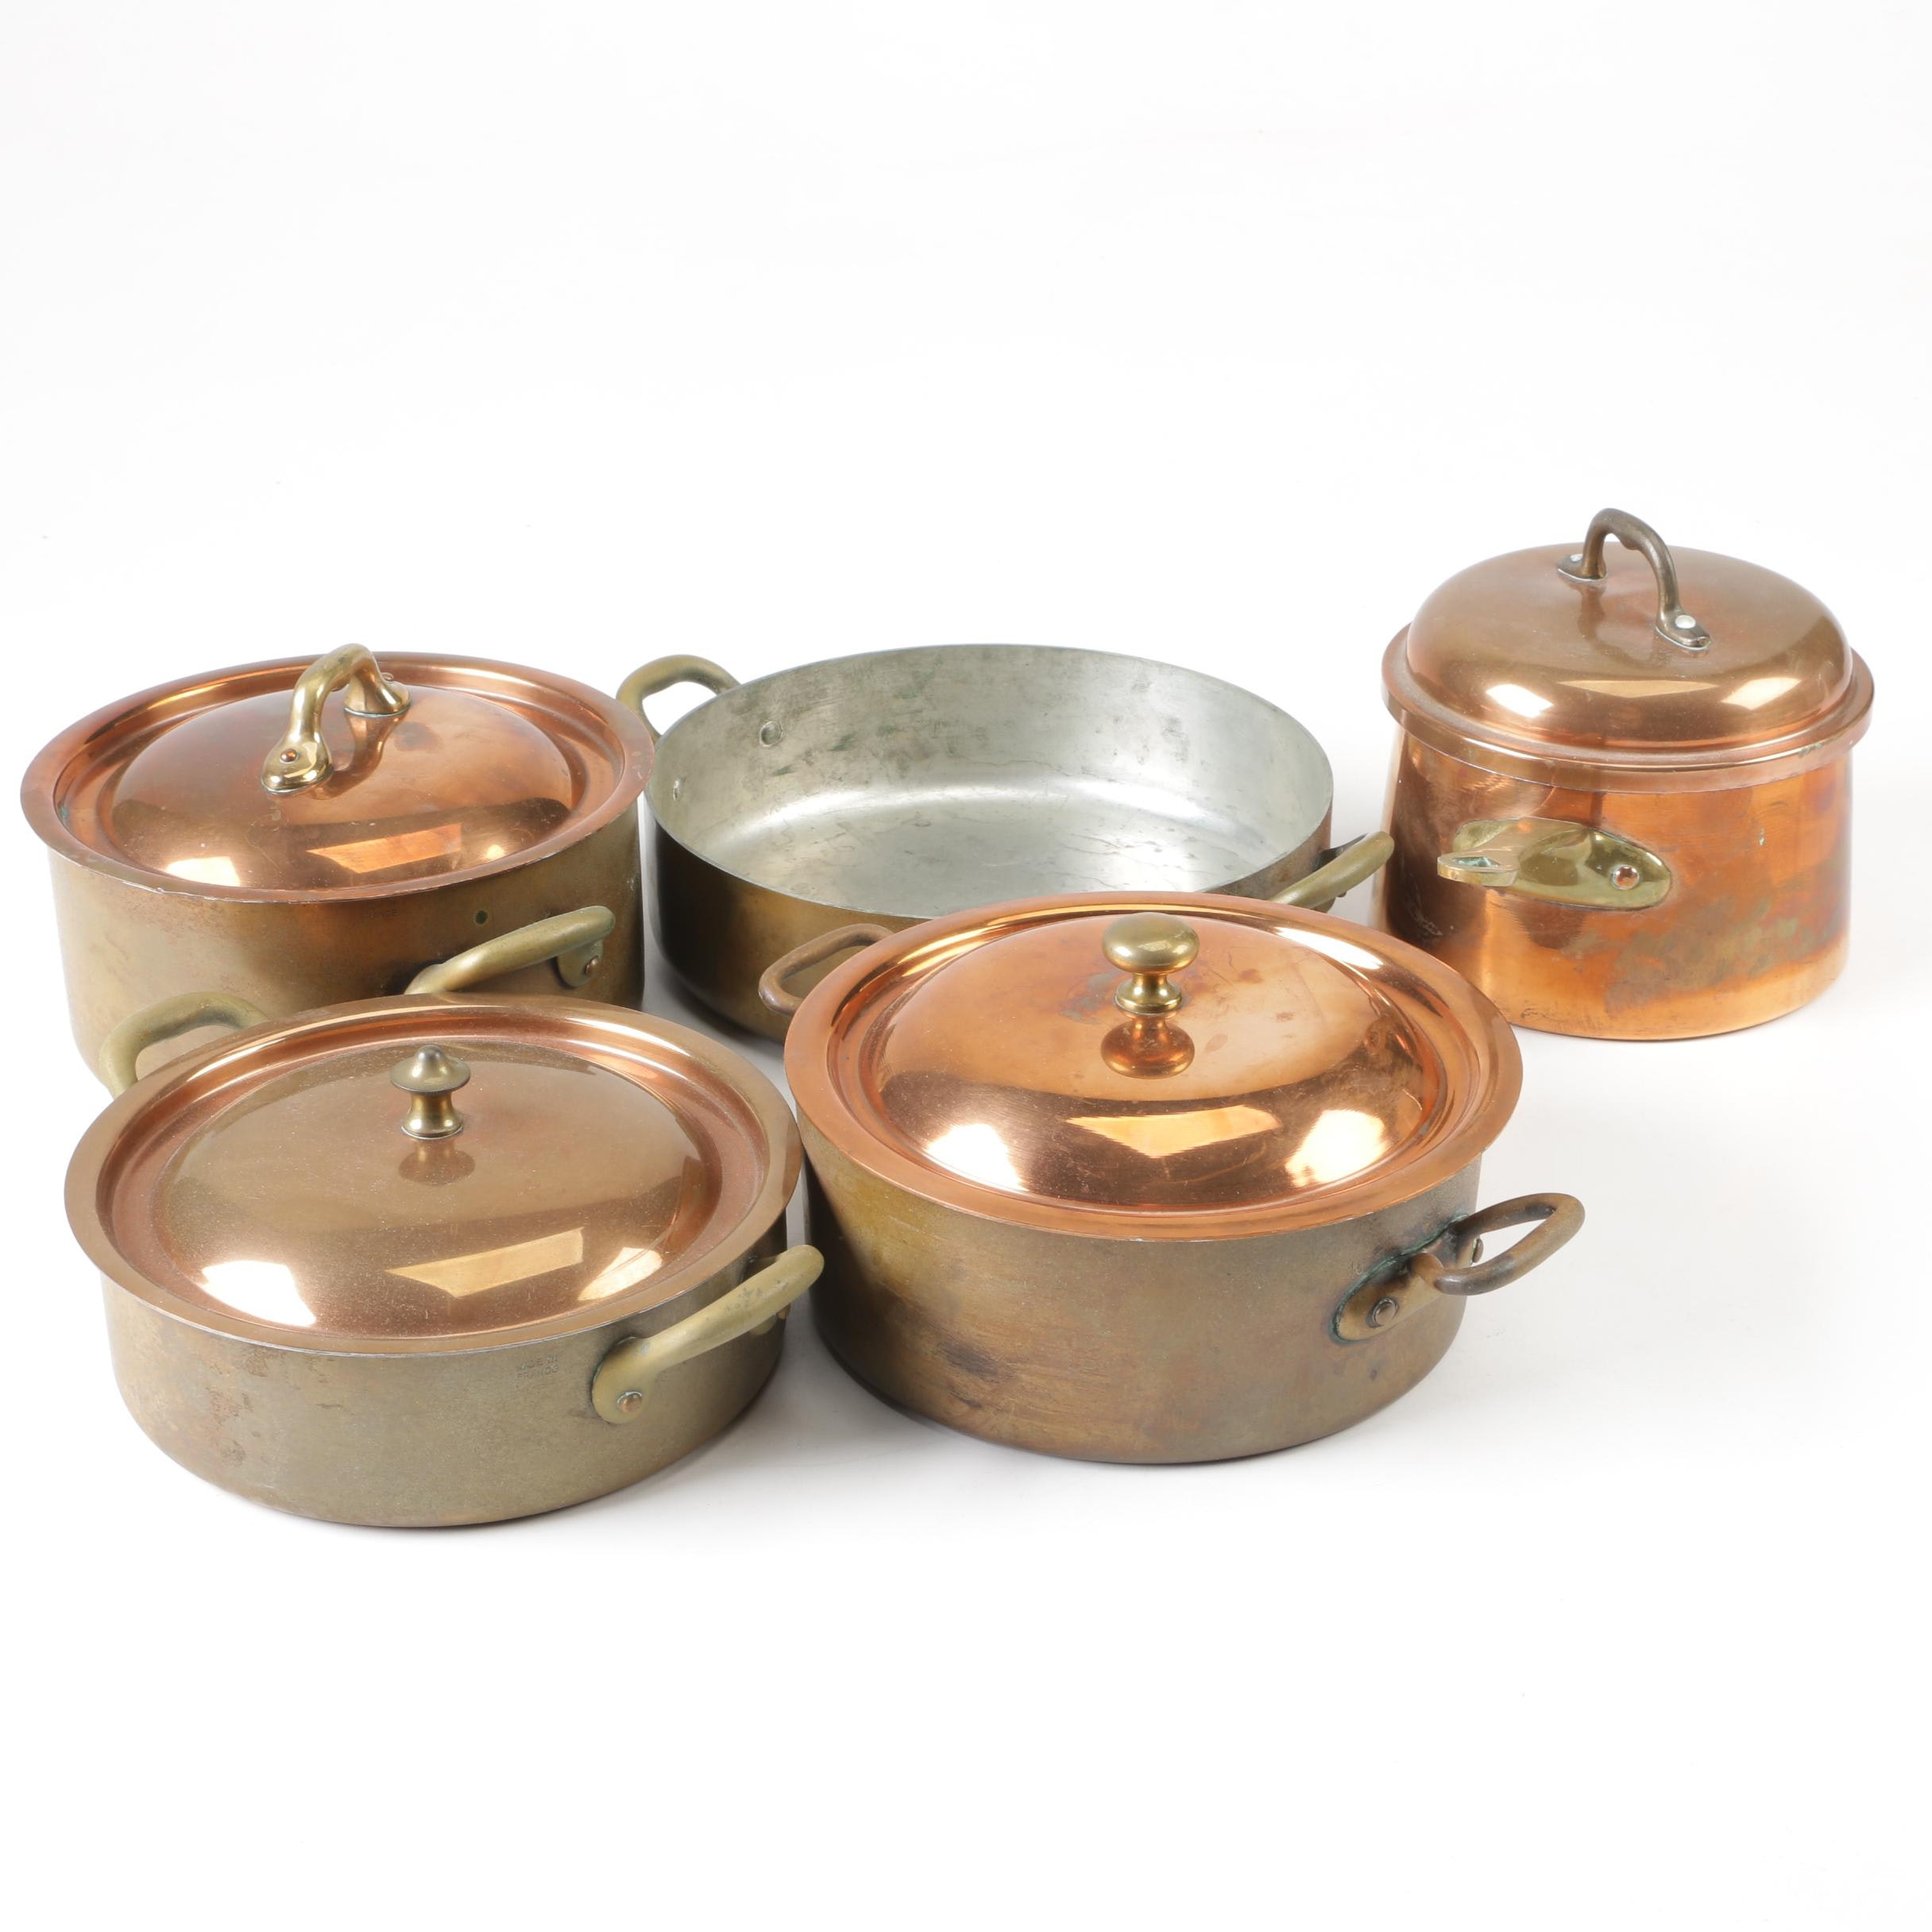 Waldow and French Made Copper Casseroles with Sauce Pot and Lids